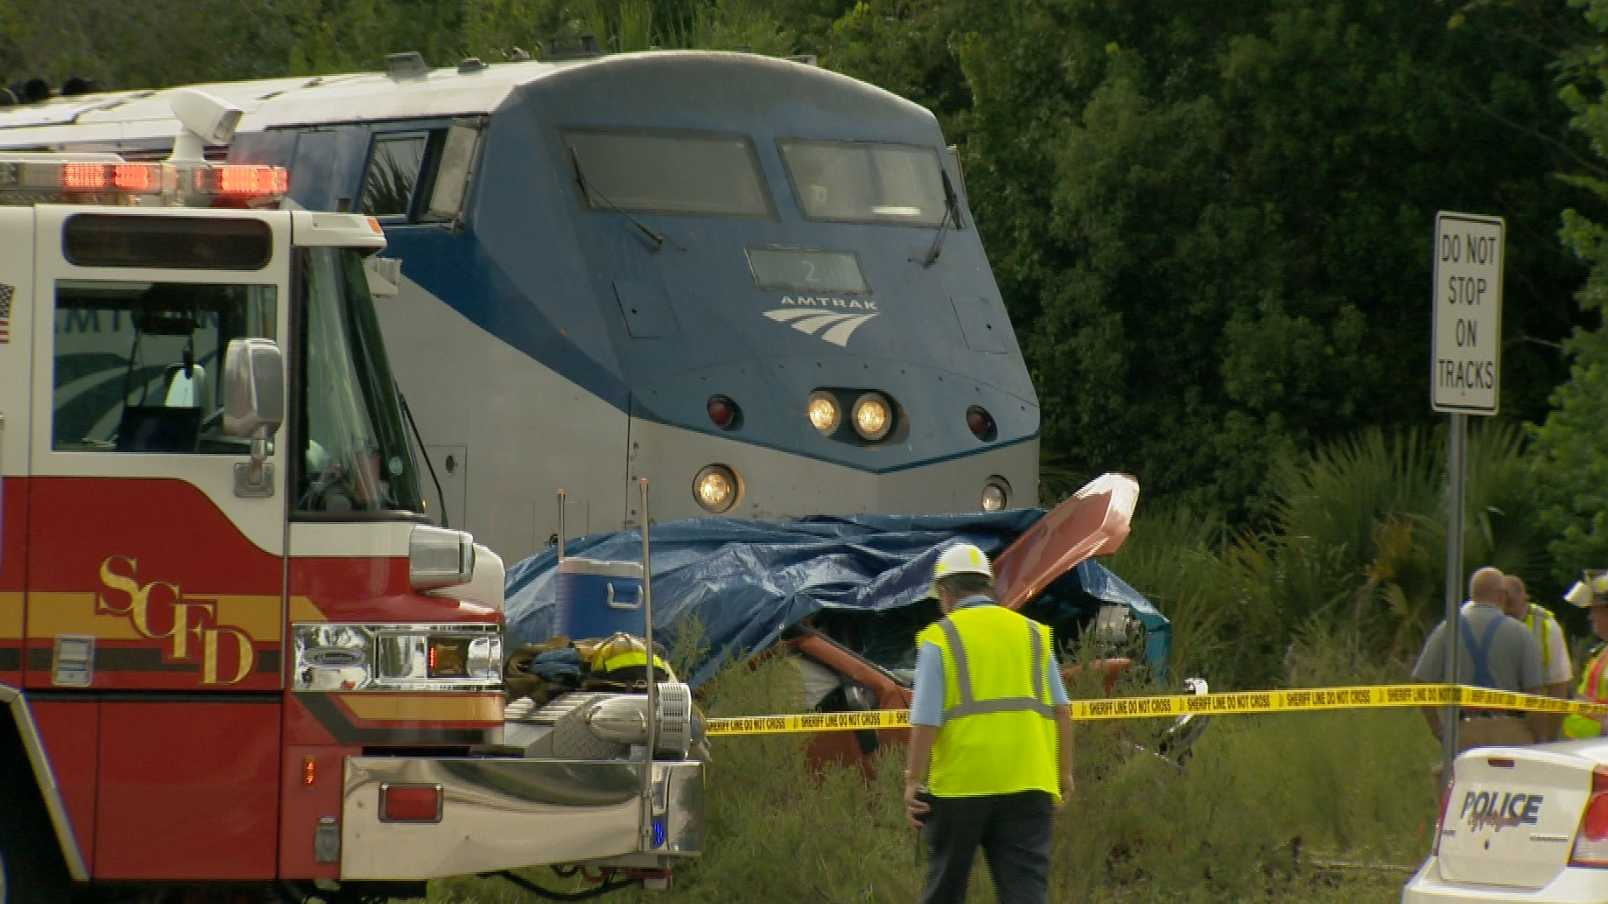 A man died Saturday when a train hit the pickup he was driving in Longwood.